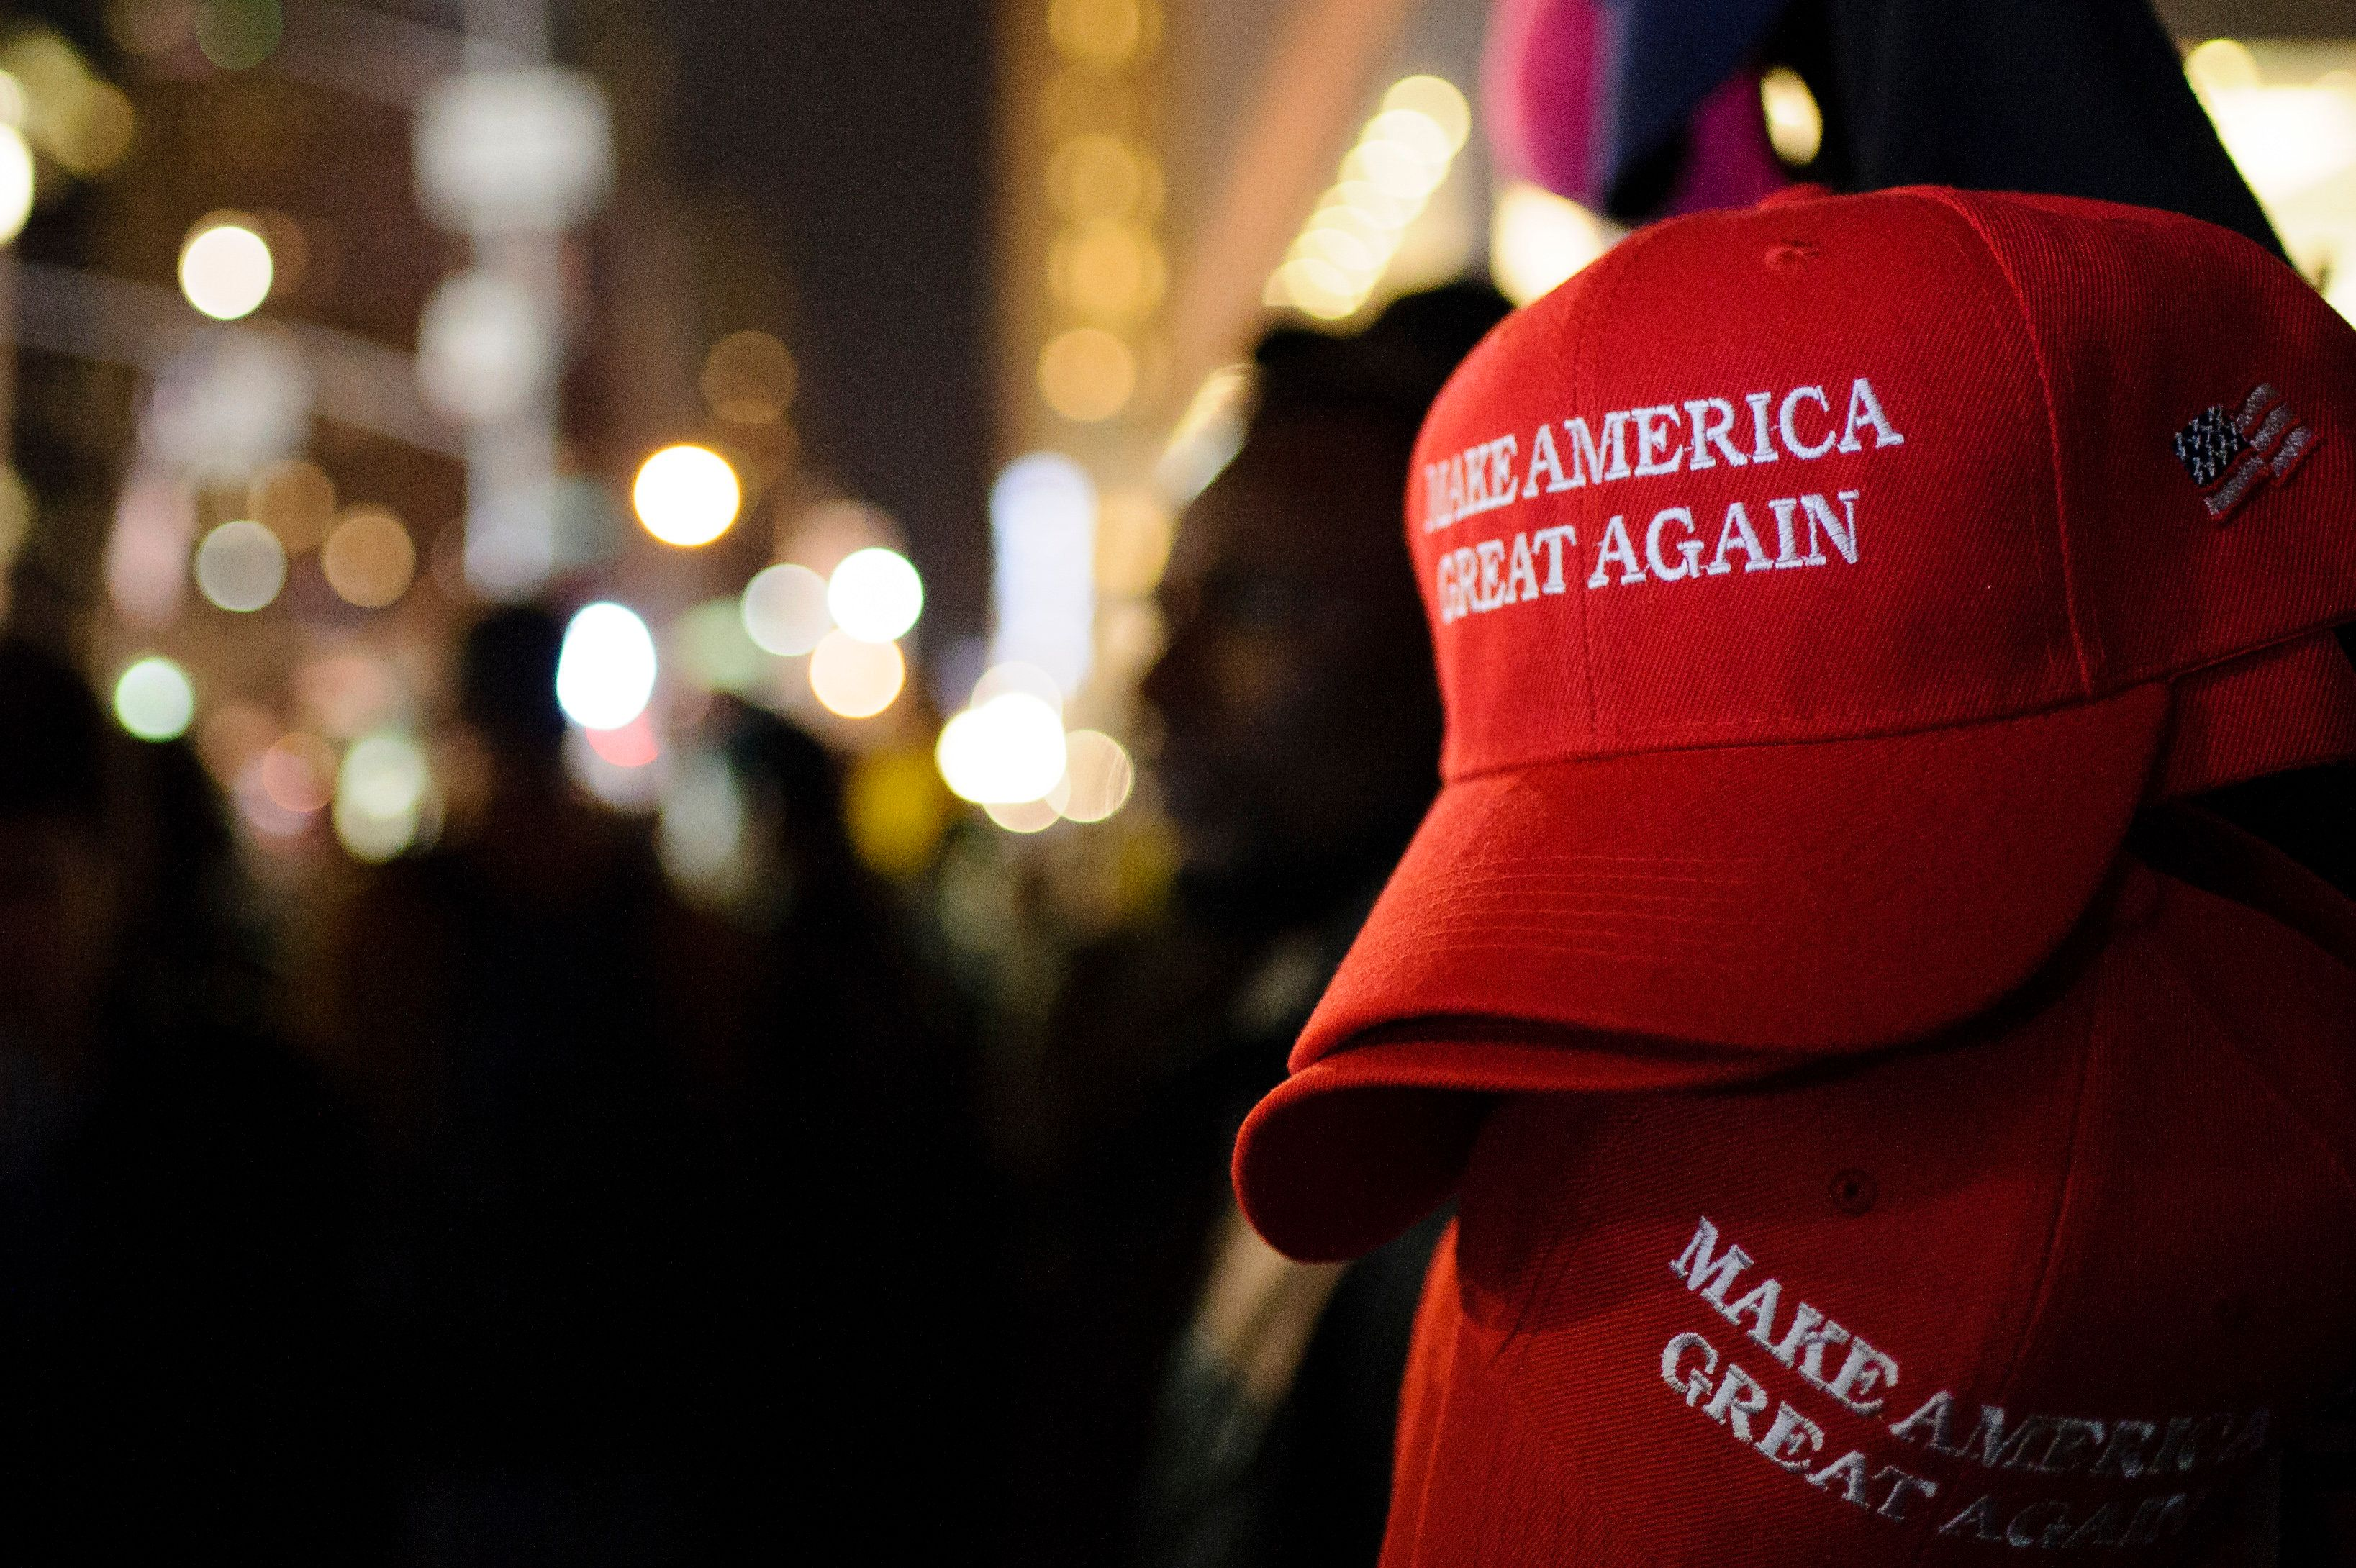 MANHATTAN, NEW YORK CITY, NEW YORK, UNITED STATES - 2016/11/09: 'Make America Great Again' red baseball caps, signature headwear of the Donald Trump campaign and its supporters, stand on sale on 6th Avenue in Midtown Manhattan in the second hour after Election Day as election results point to a shock Trump win. (Photo by David Cliff/SOPA Images/LightRocket via Getty Images)